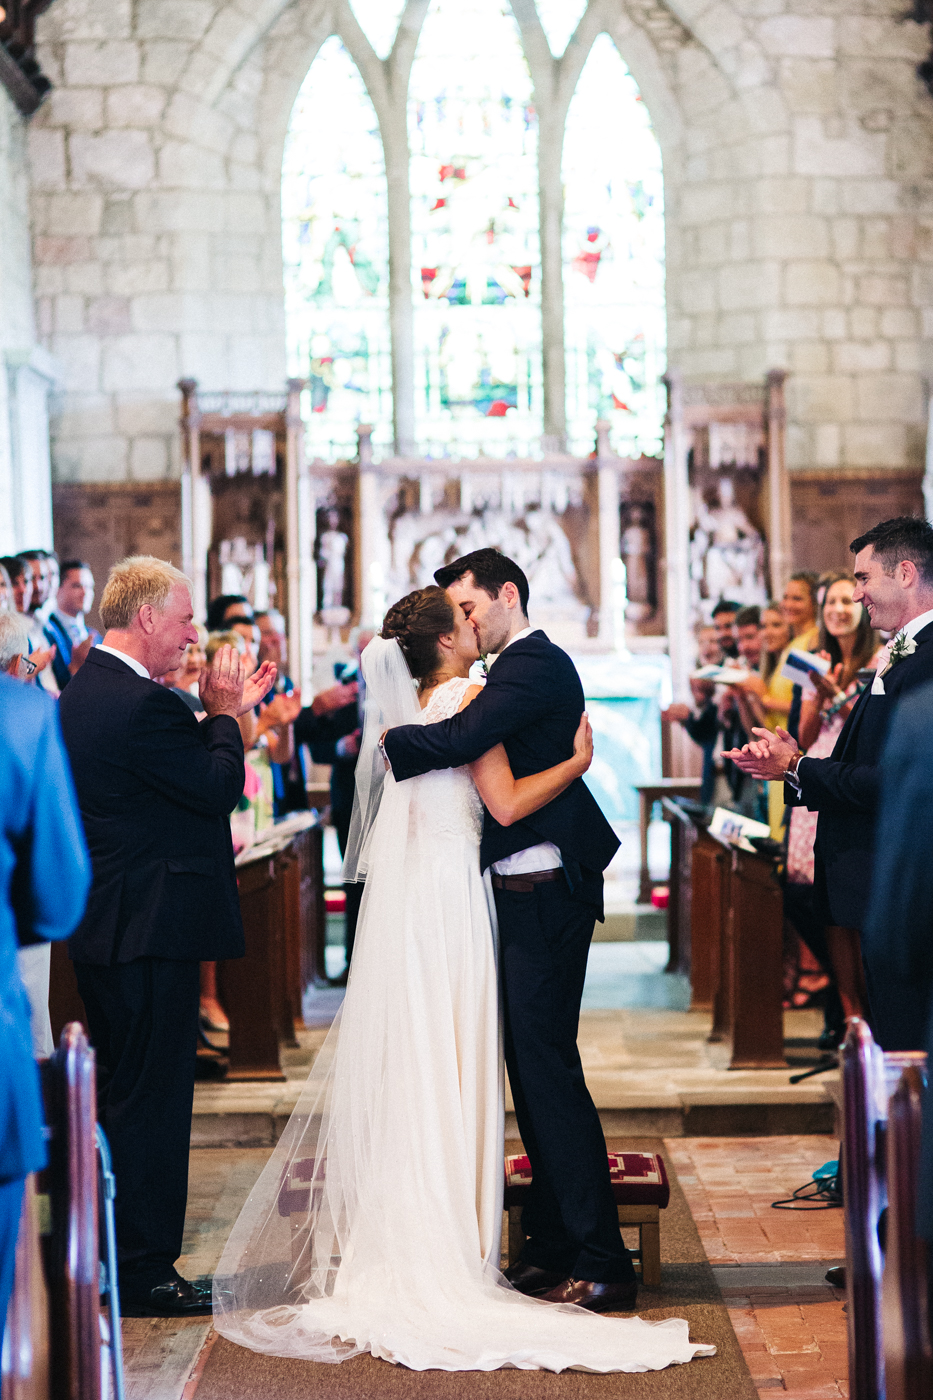 a bride and groom kiss at the end of the aisle. aldby park wedding york north yorkshire teesside photography stop motion wedding films uk